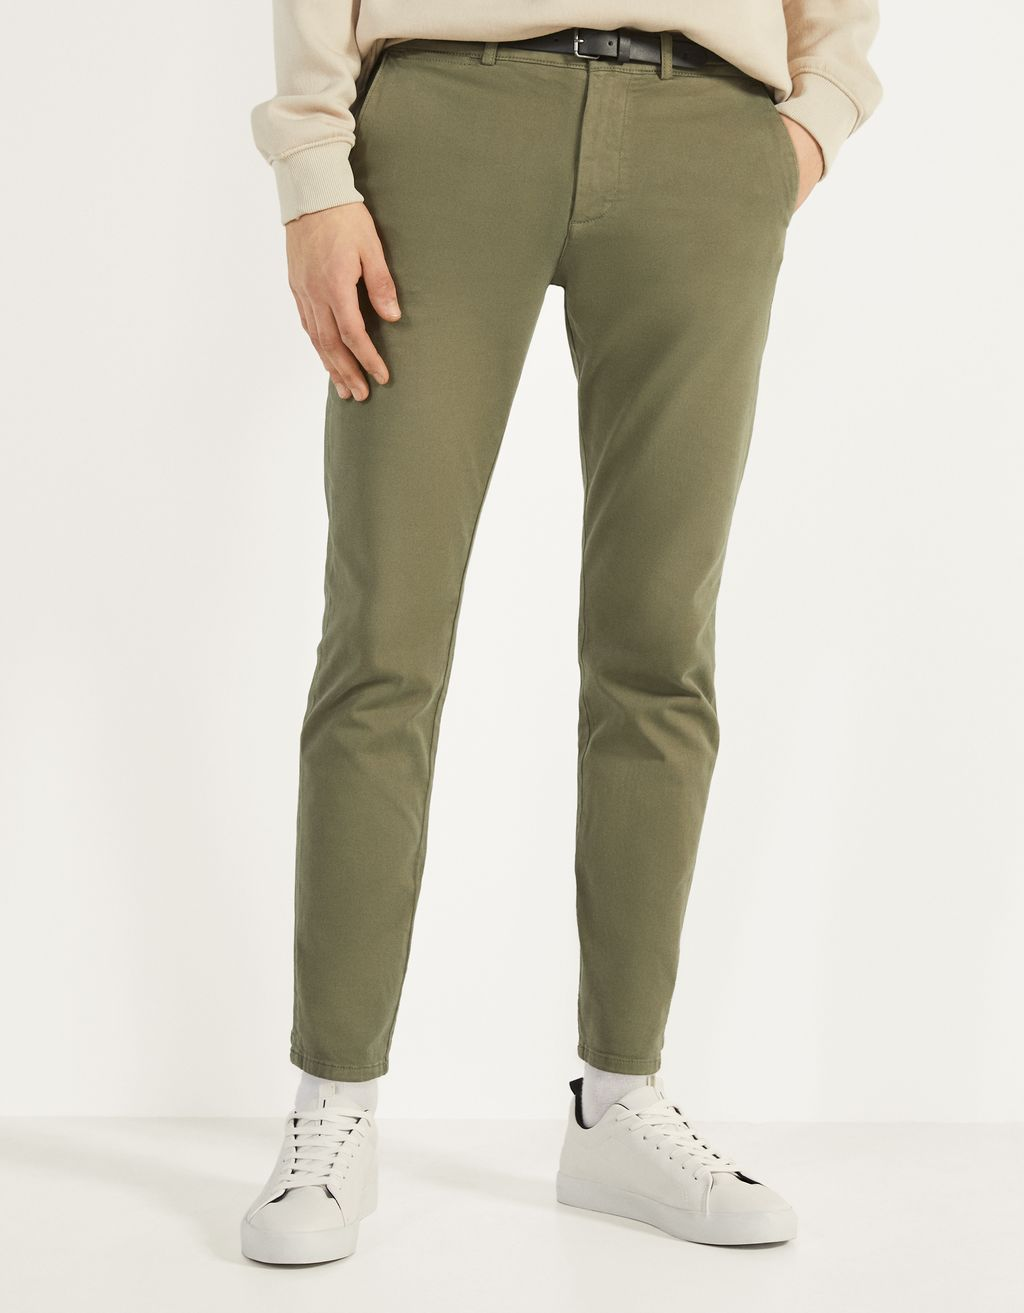 Slim Fit chino trousers with belt